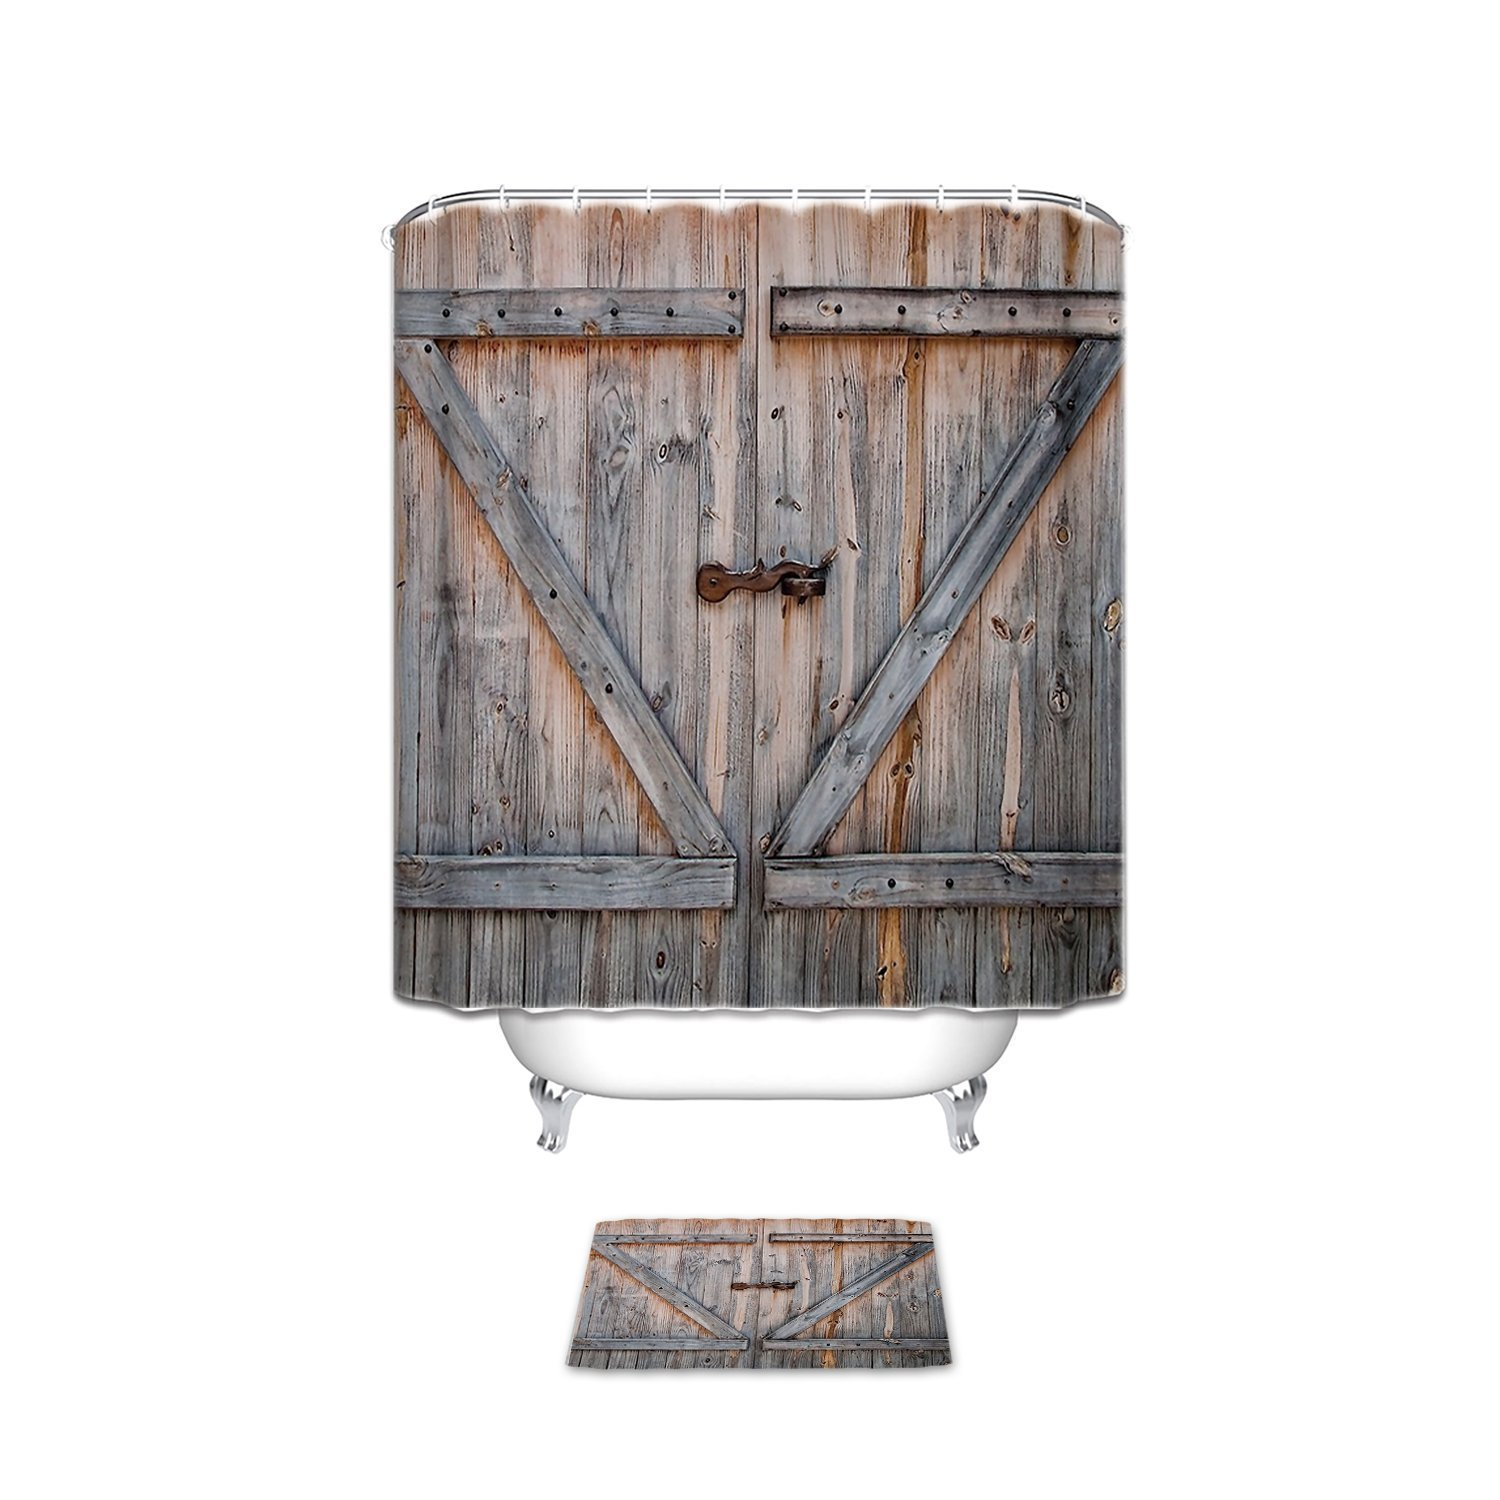 Vintage Rustic Wood Theme Polyester Fabric Bathroom Set Shower Curtain With Bath Mats Rugs Country